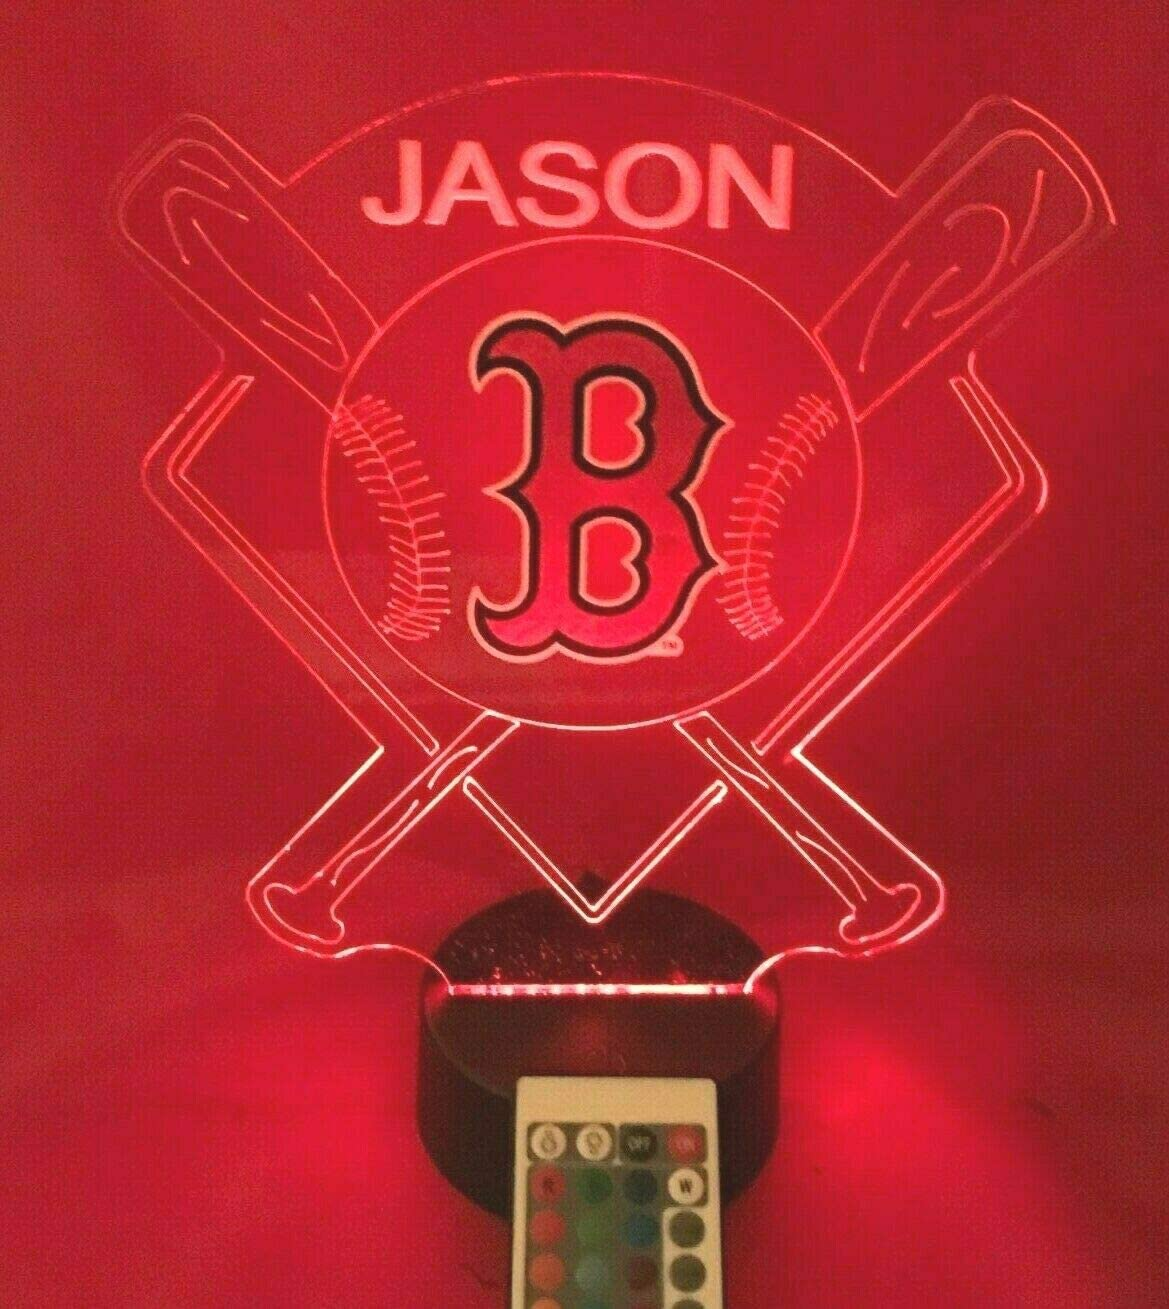 Baseball Night Light Up Lamp LED Lamp Personalized Handmade Stadium with Bats Free Personalization and Remote, Men Man Boys Girls Sports Gift, 16 Color Options, and Variations! (BS Red Sox)